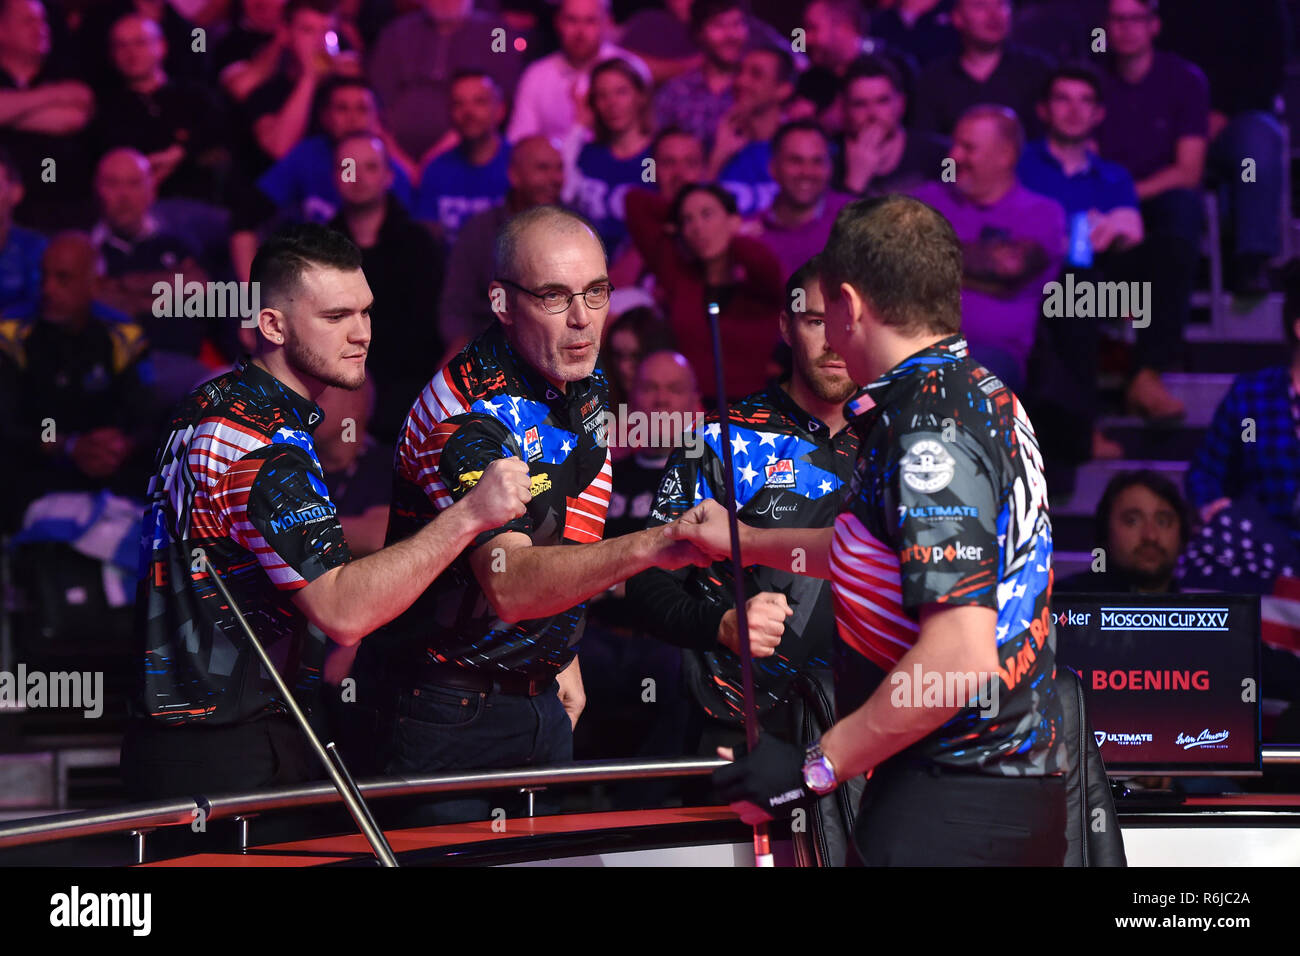 London, UK. 5th Dec, 2018. Team USA: Jahan Ruijsink, Jeremy Jones, Skyler Woodward, Shane van Boening, Billy Thorpe, Tyler Styer and Corey Deuel during The Partypoker Mosconi Cup 2018: on Day 2 event - Jayson Shaw (SCO) v Shane van Boening (USA) at Alexandra Palace on Wednesday, 05 December 2018. LONDON, ENGLAND. (Editorial use only, license required for commercial use. No use in betting, games or a single club/league/player publications.) Credit: Taka Wu/Alamy Live News - Stock Image